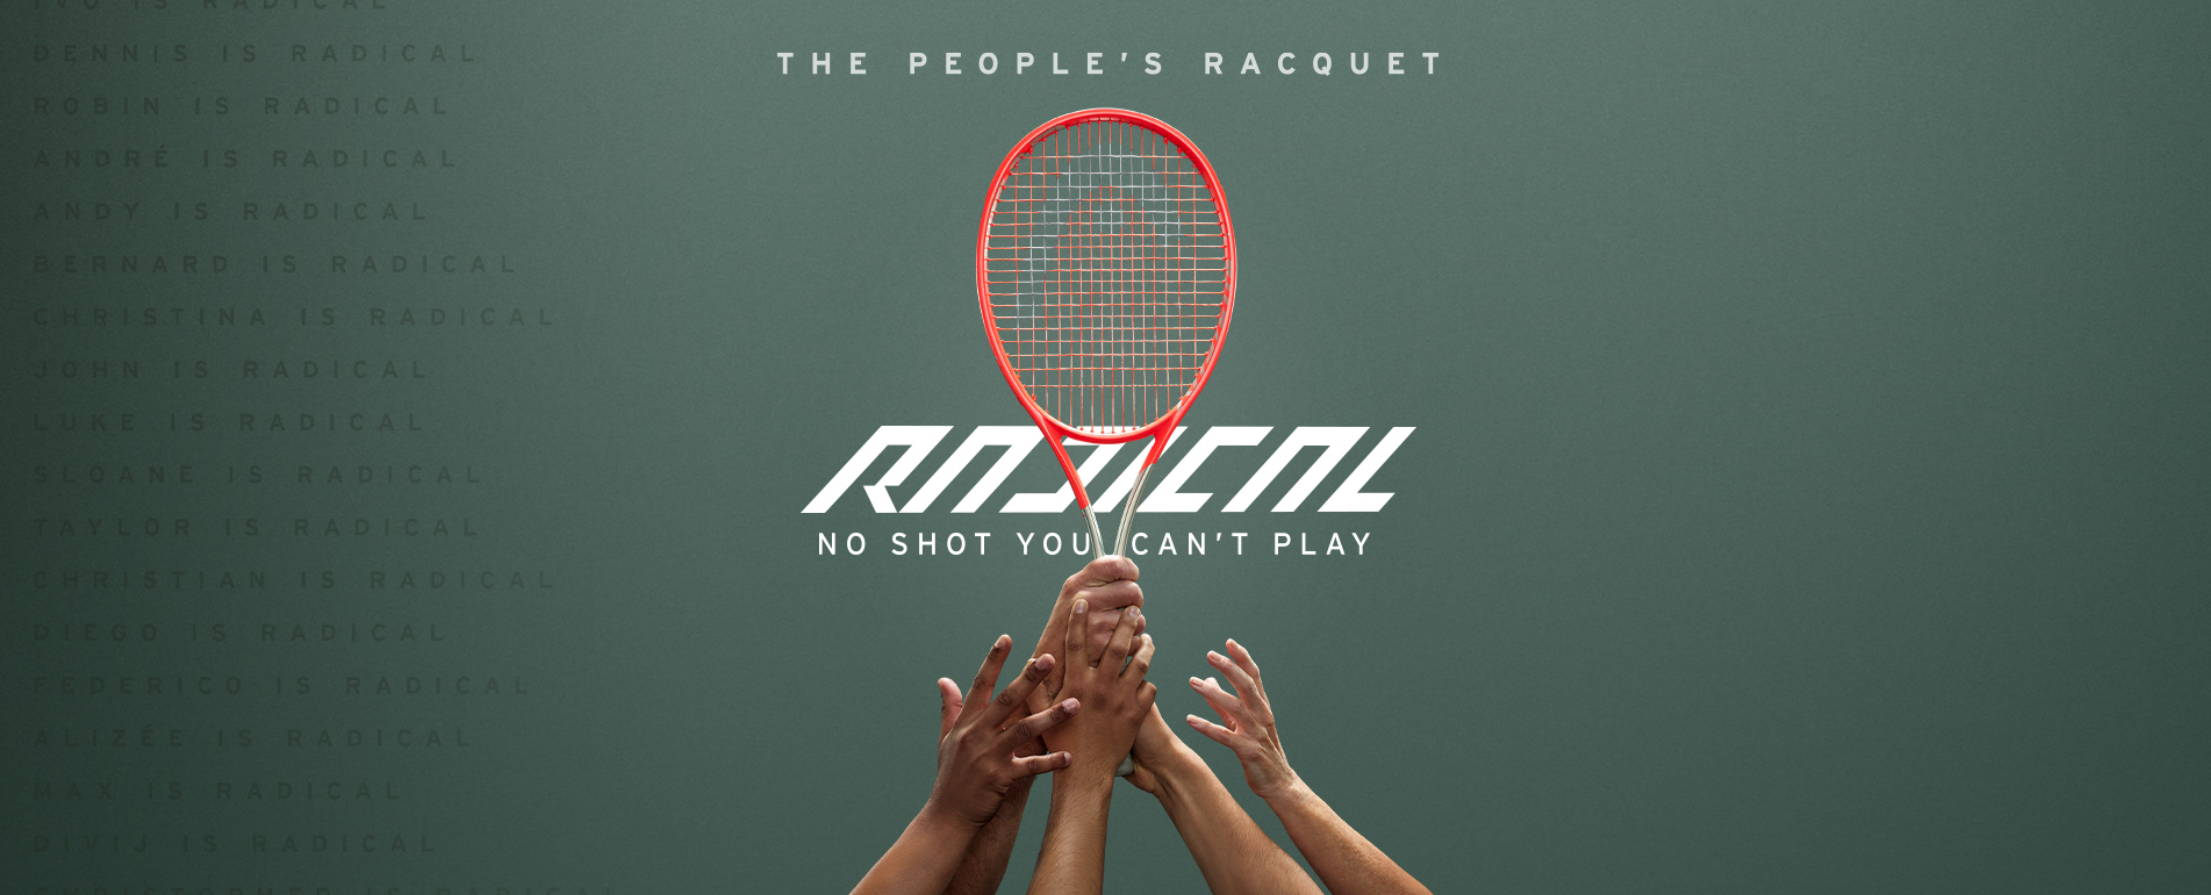 The People's Racquet - The HEAD Graphene 360+ Radical Tennis Racquet